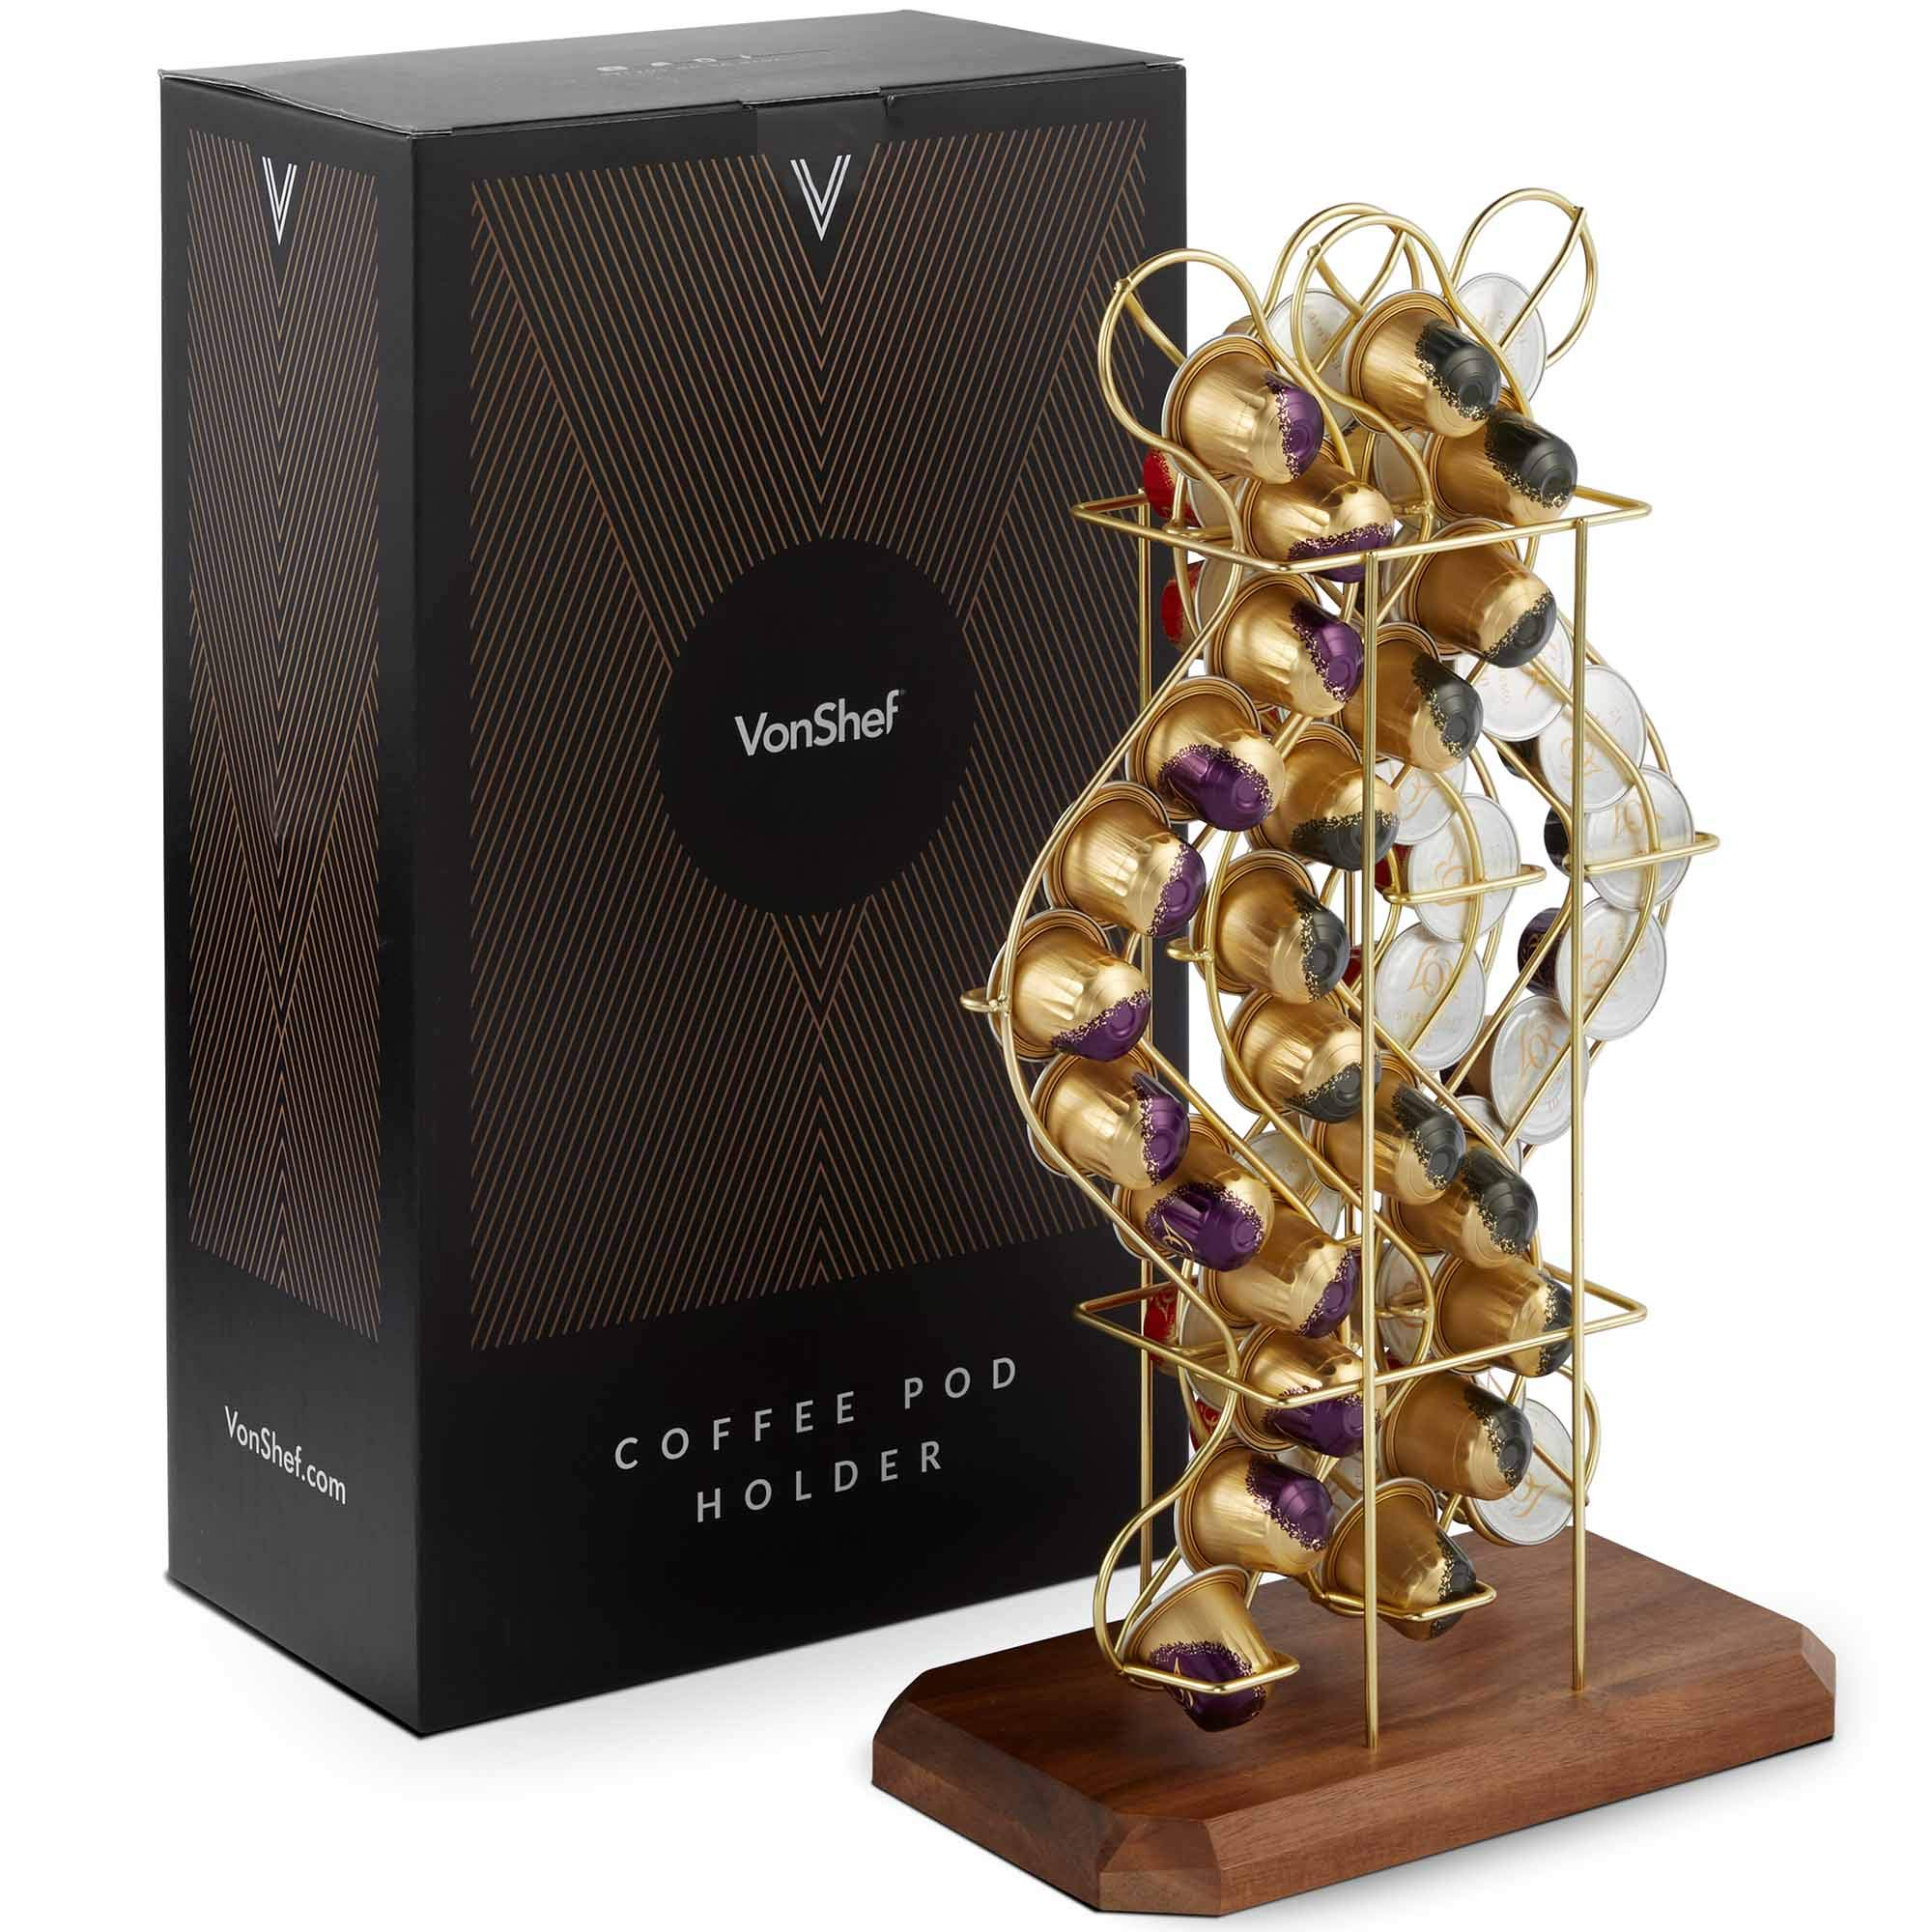 VonShef Coffee Pod Holder Stand Compatible with Nespresso Capsules Storage Holds 48 Pods Decorative Brushed Gold Stainless Steel Wire Rack Tower with Rotating Holder Revolving Wooden Base